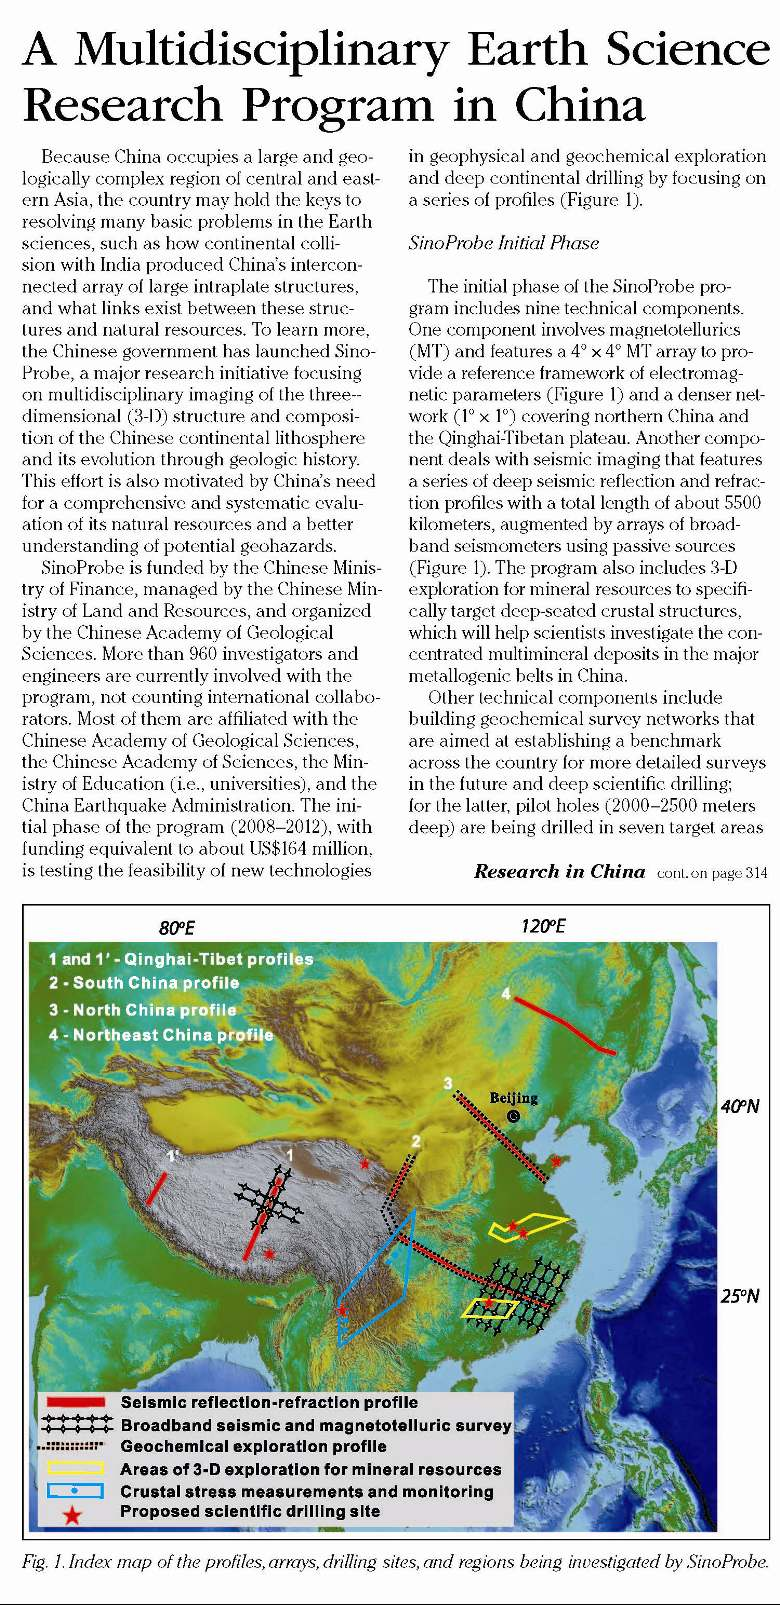 A Multidisciplinary Earth Science Research Program in China